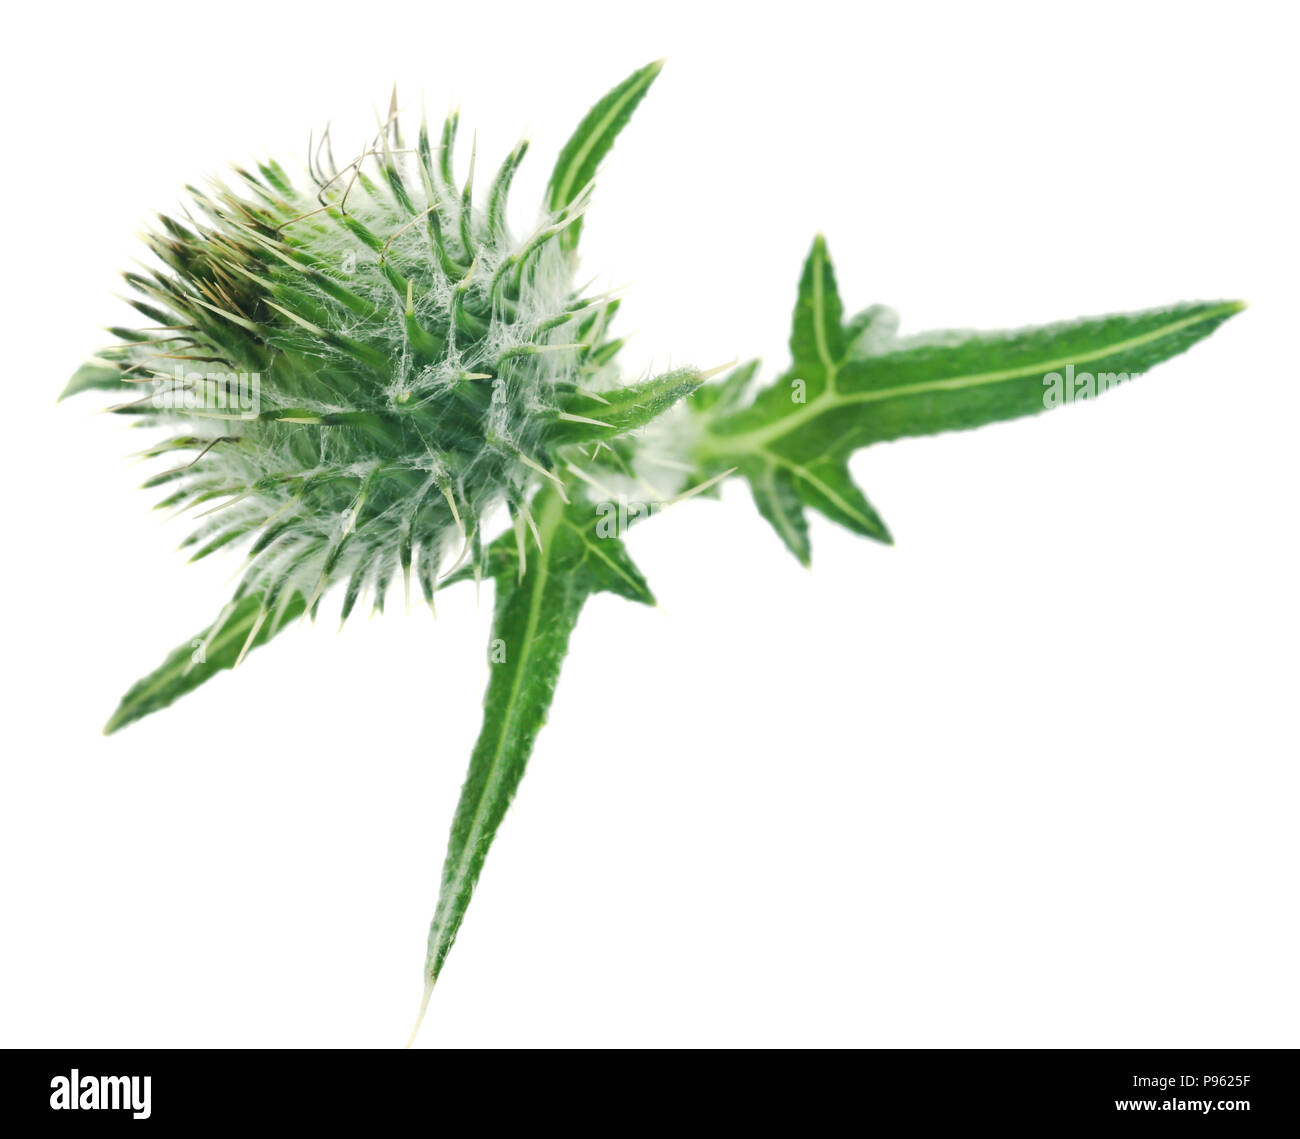 Milk thistle used as medicinal herb over white background - Stock Image